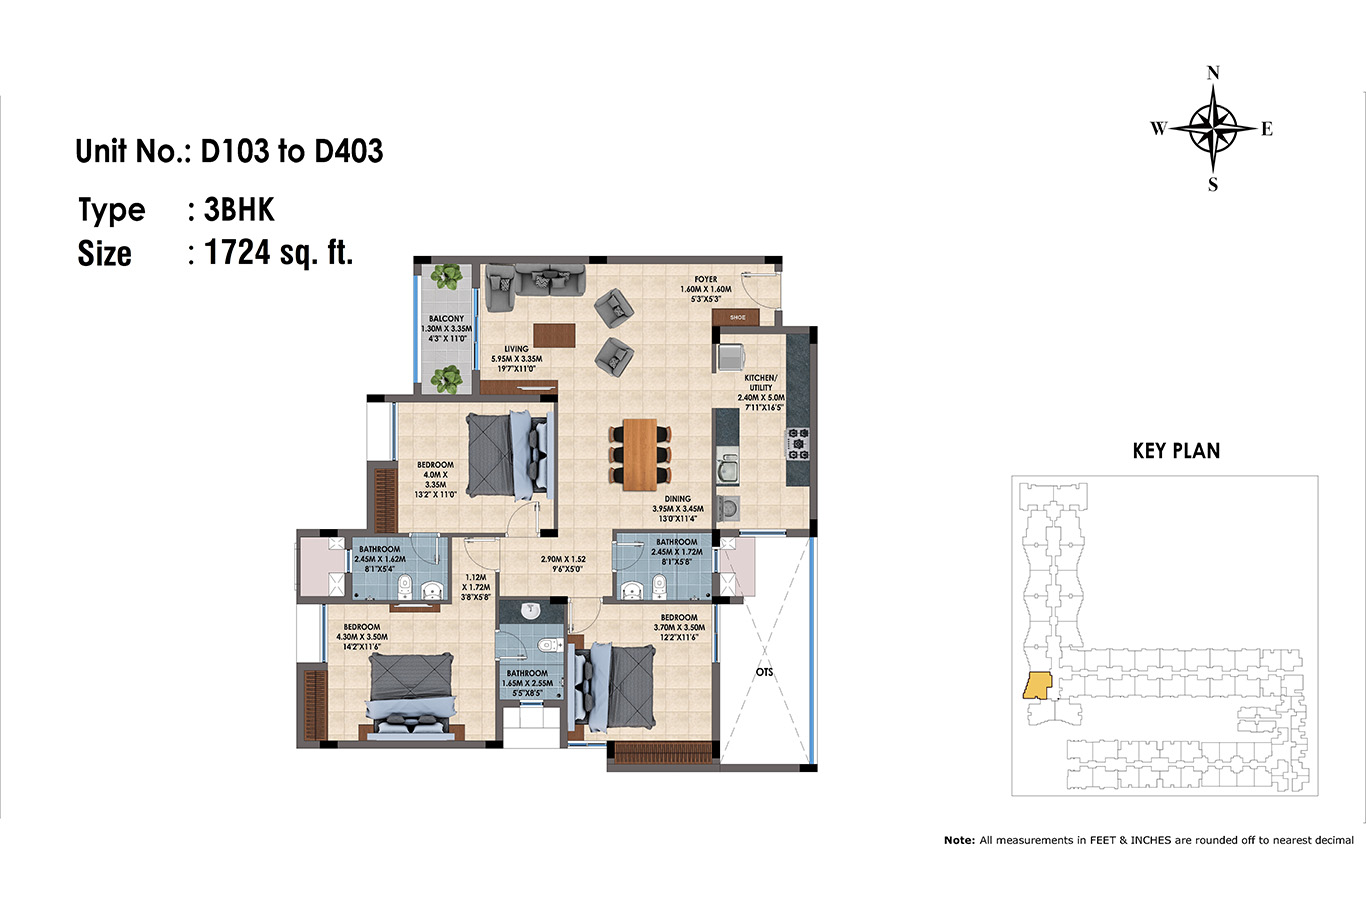 D103 to D403(3BHK)